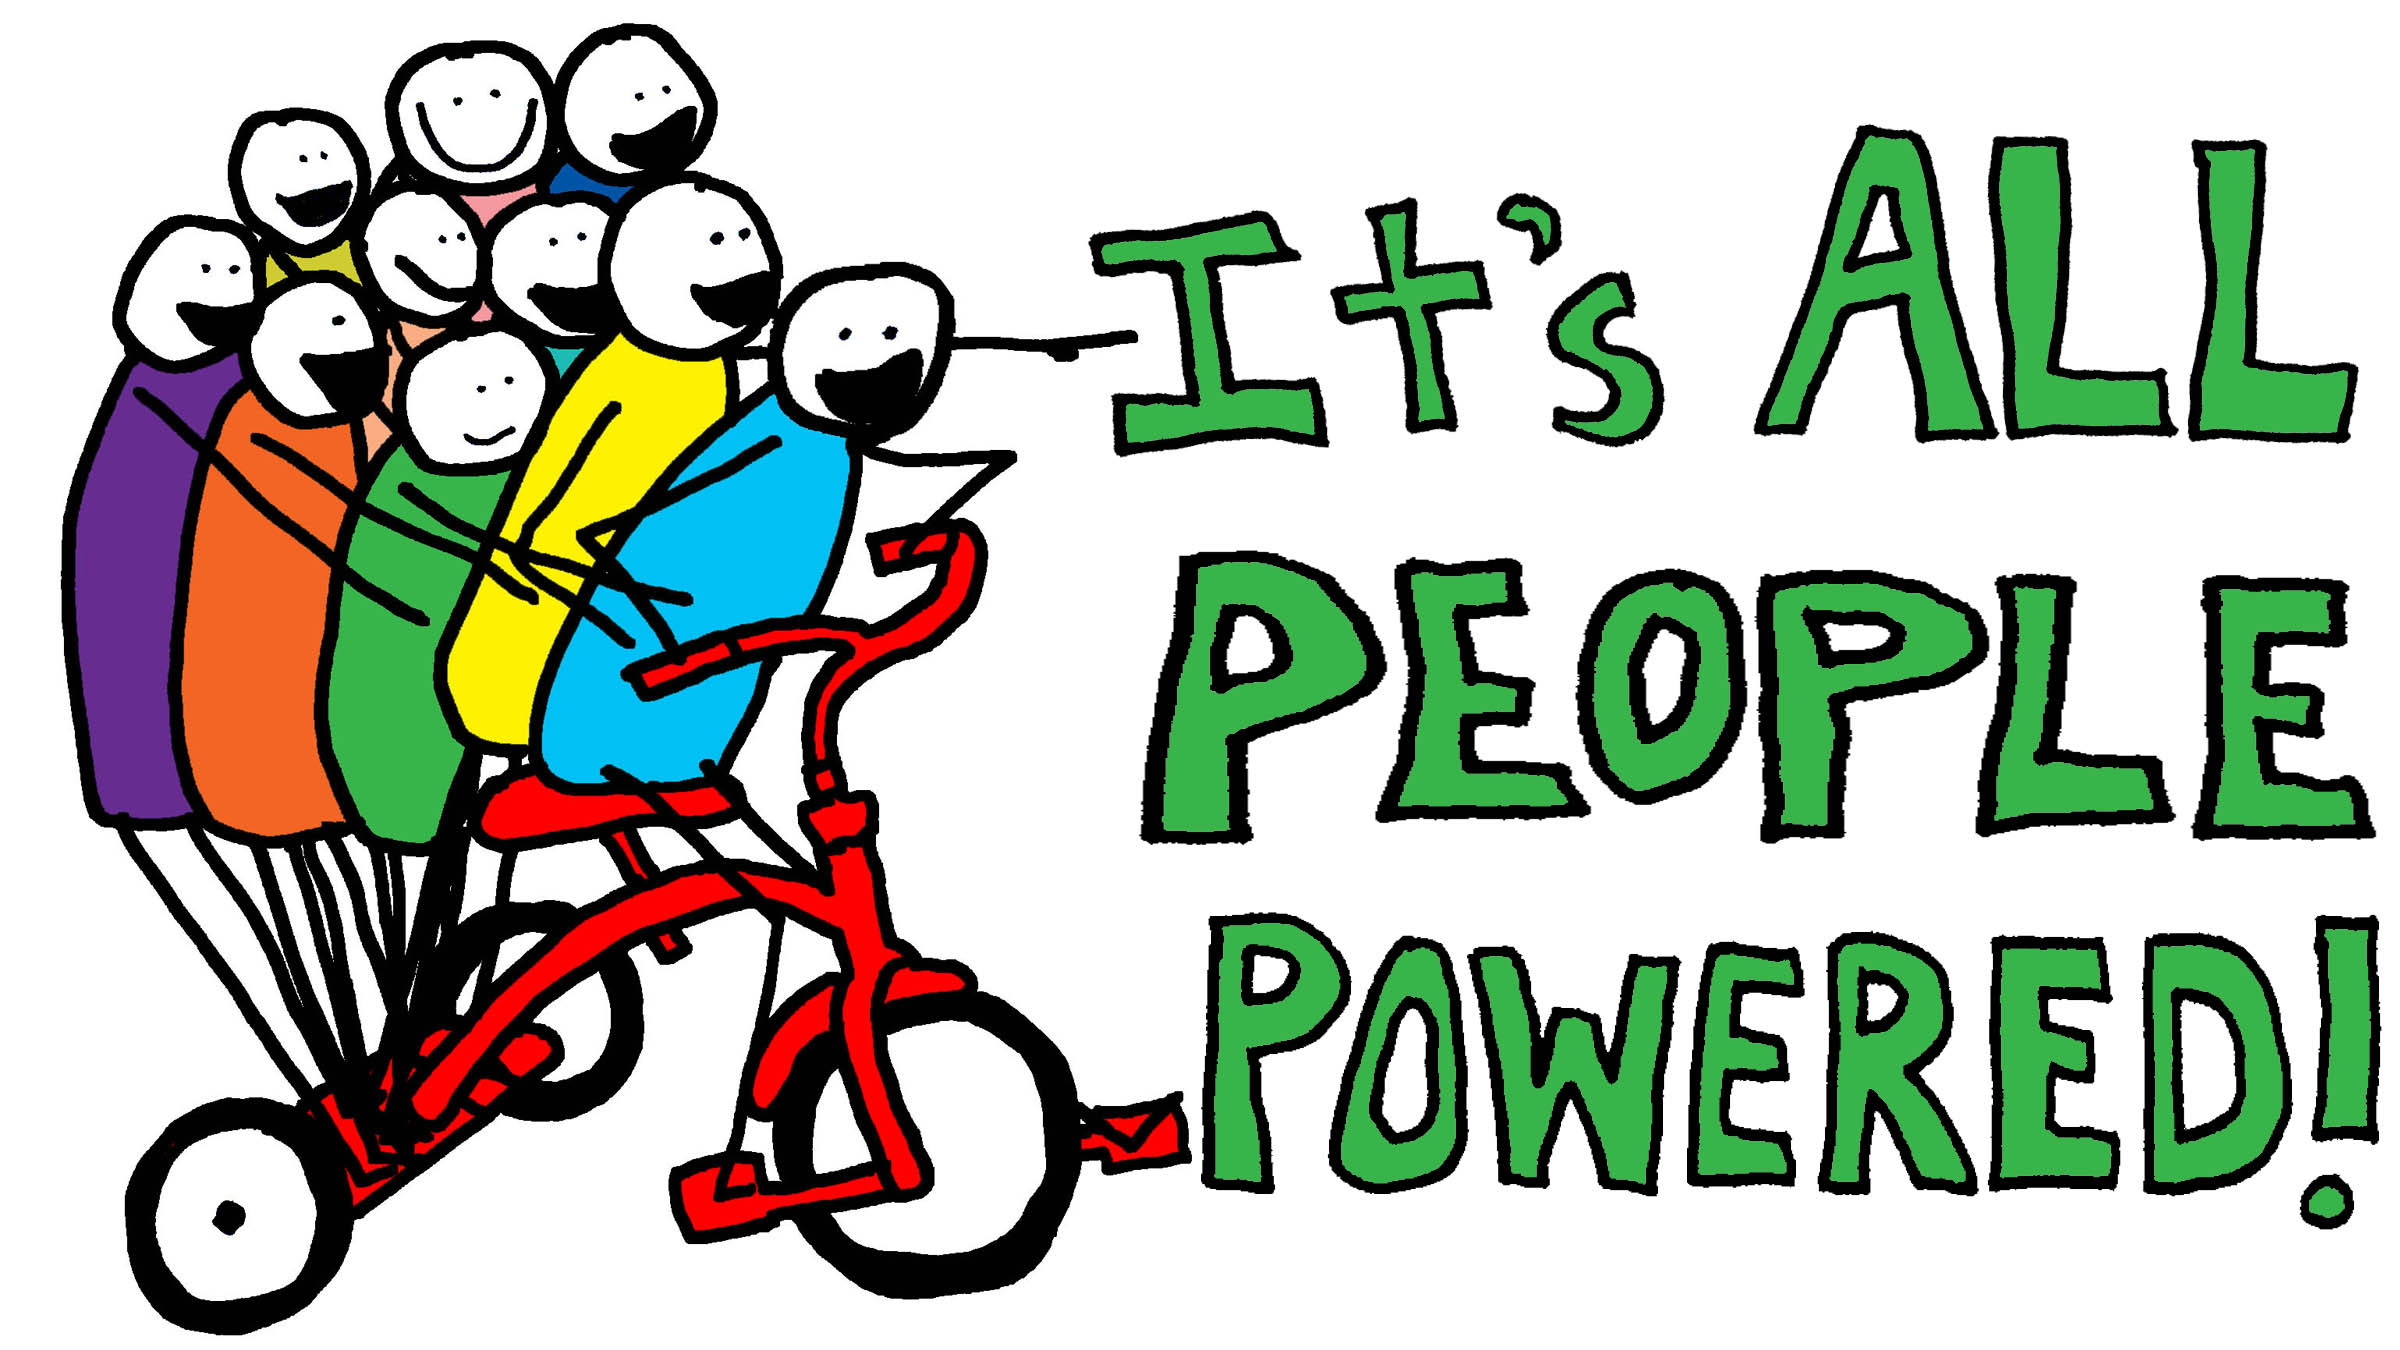 It's all people powered!